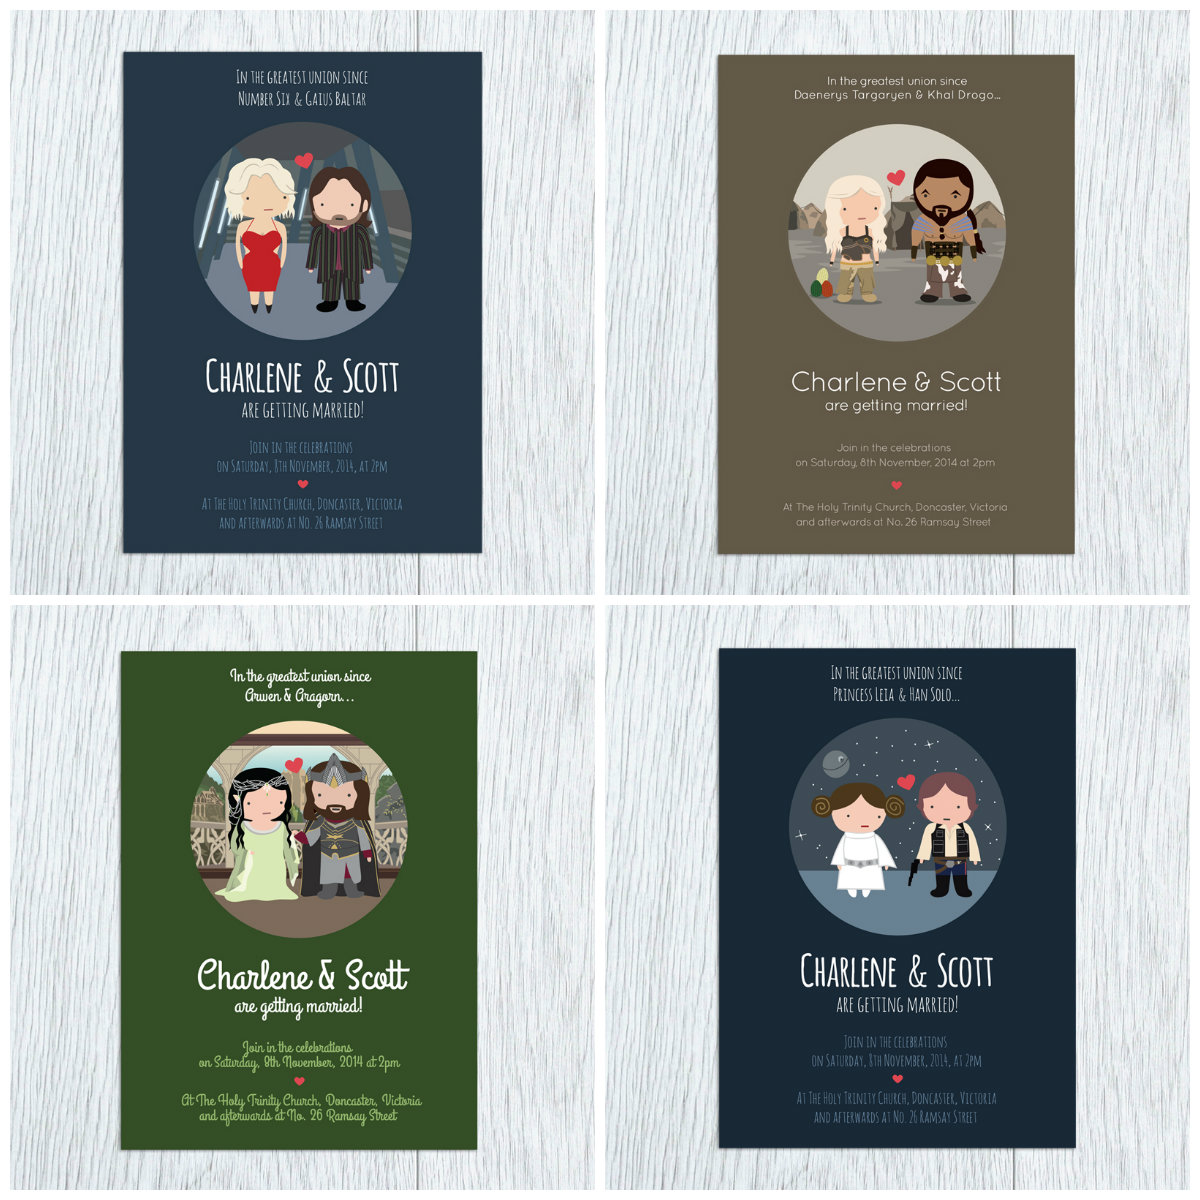 Star Wars Themed Wedding Invitations lektoninfo